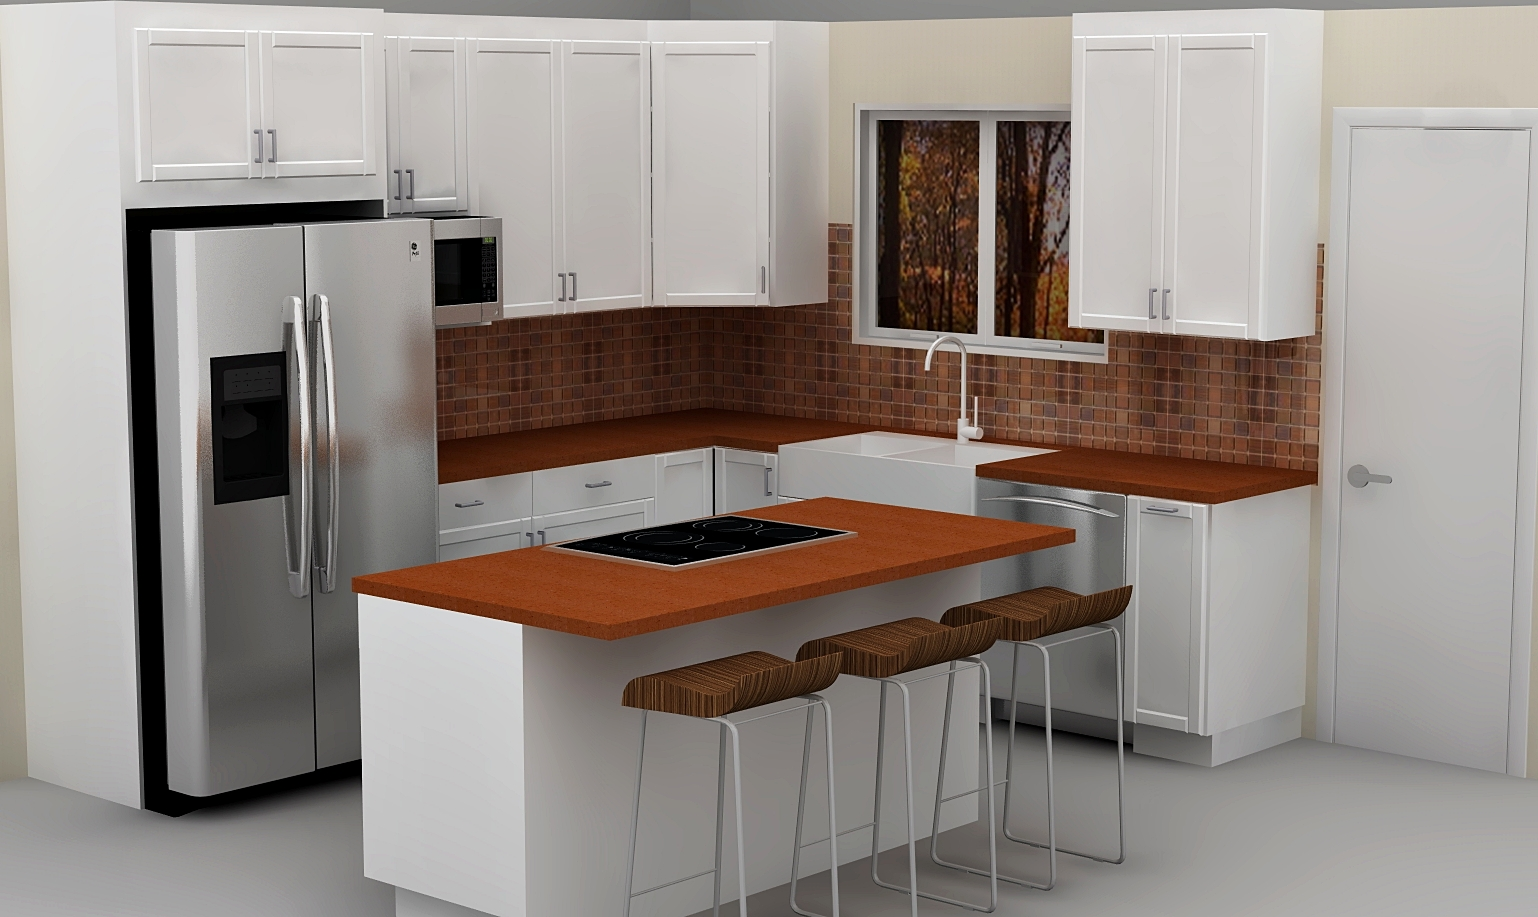 white ikea kitchen cabinets - Ikea Kitchen Design Ideas